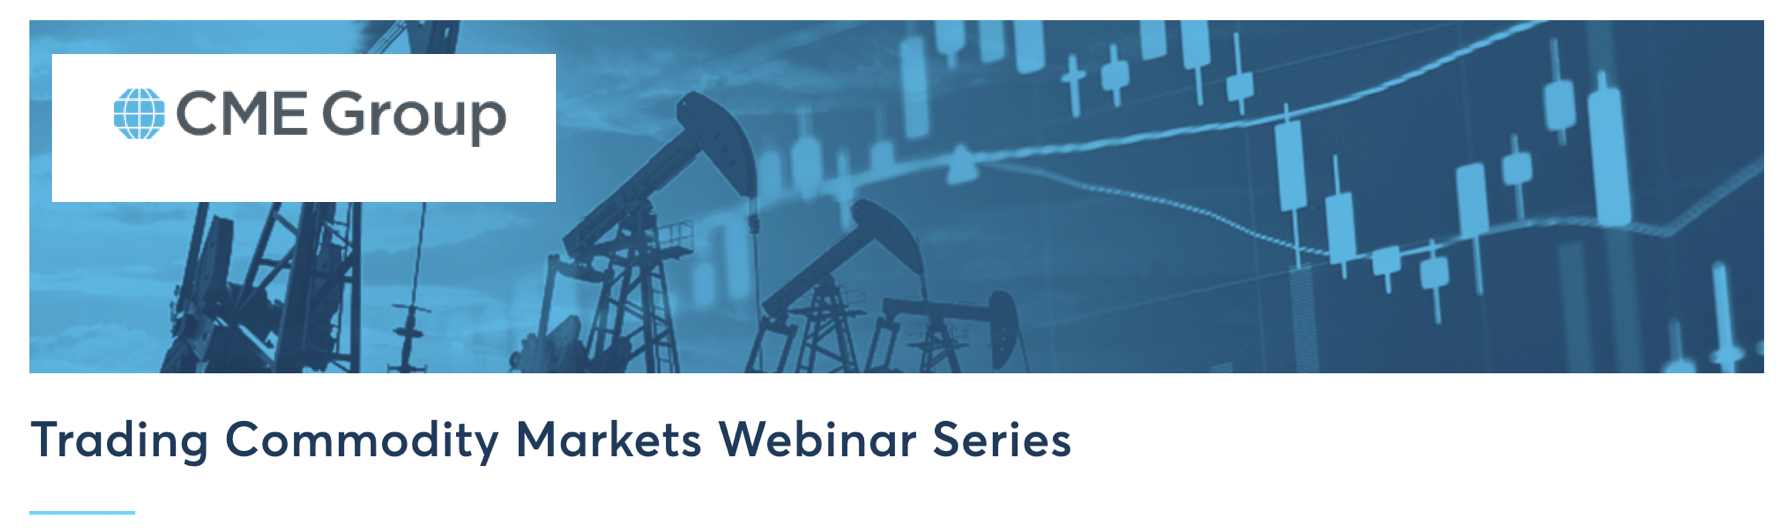 CME GROUP :  Trading Commodity Markets Webinar Series